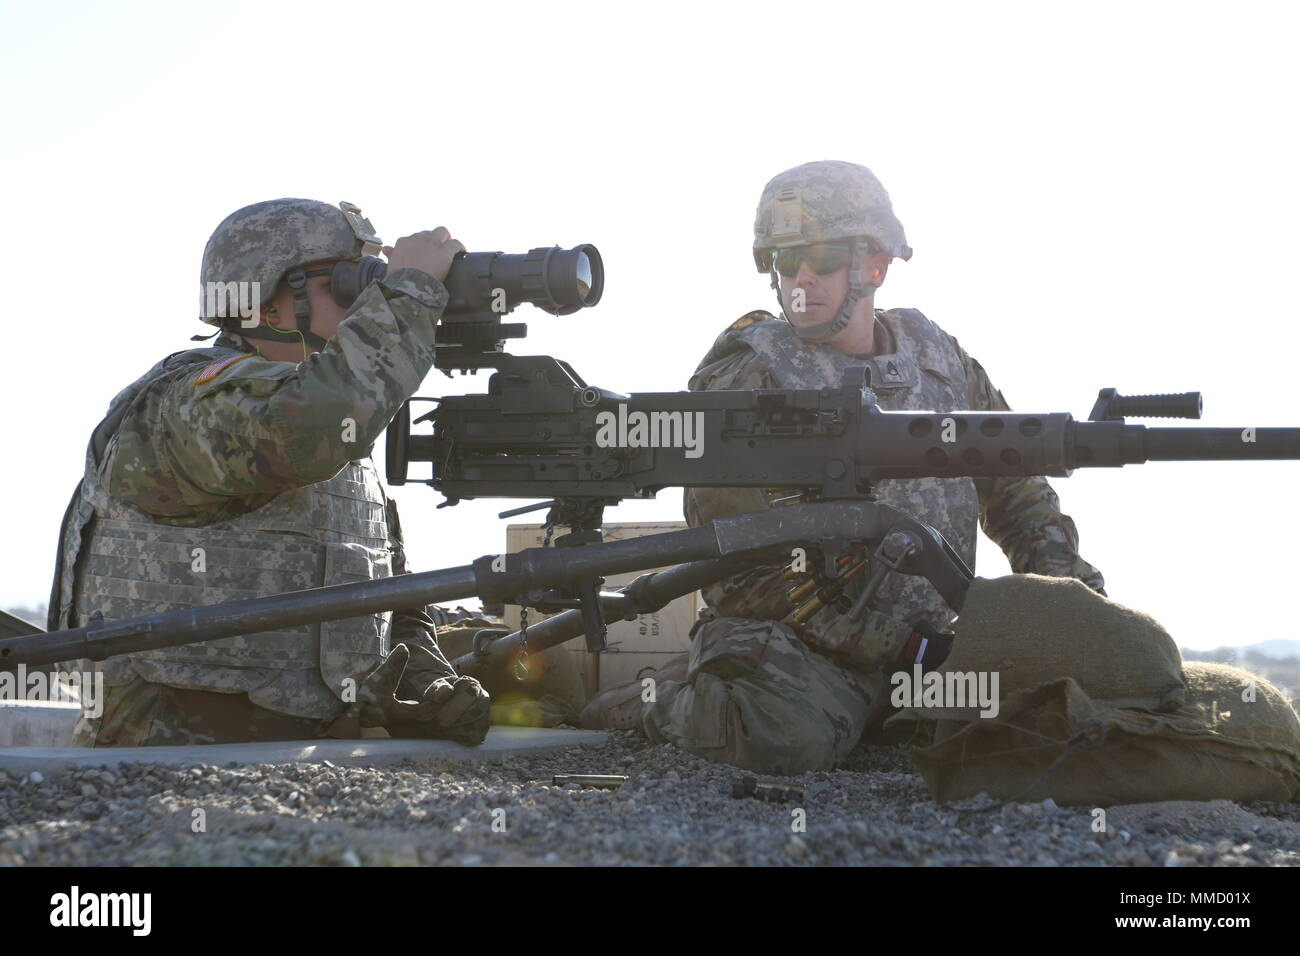 U S Army Reserve Spc Stephen Justin Adjusts An An Pas 13 Thermal Weapon Sight While Staff Sgt Jeff Harley Looks On Both Soldiers Are Petroleum Supply Specialists With The 842nd Quartermaster Company Preparing To